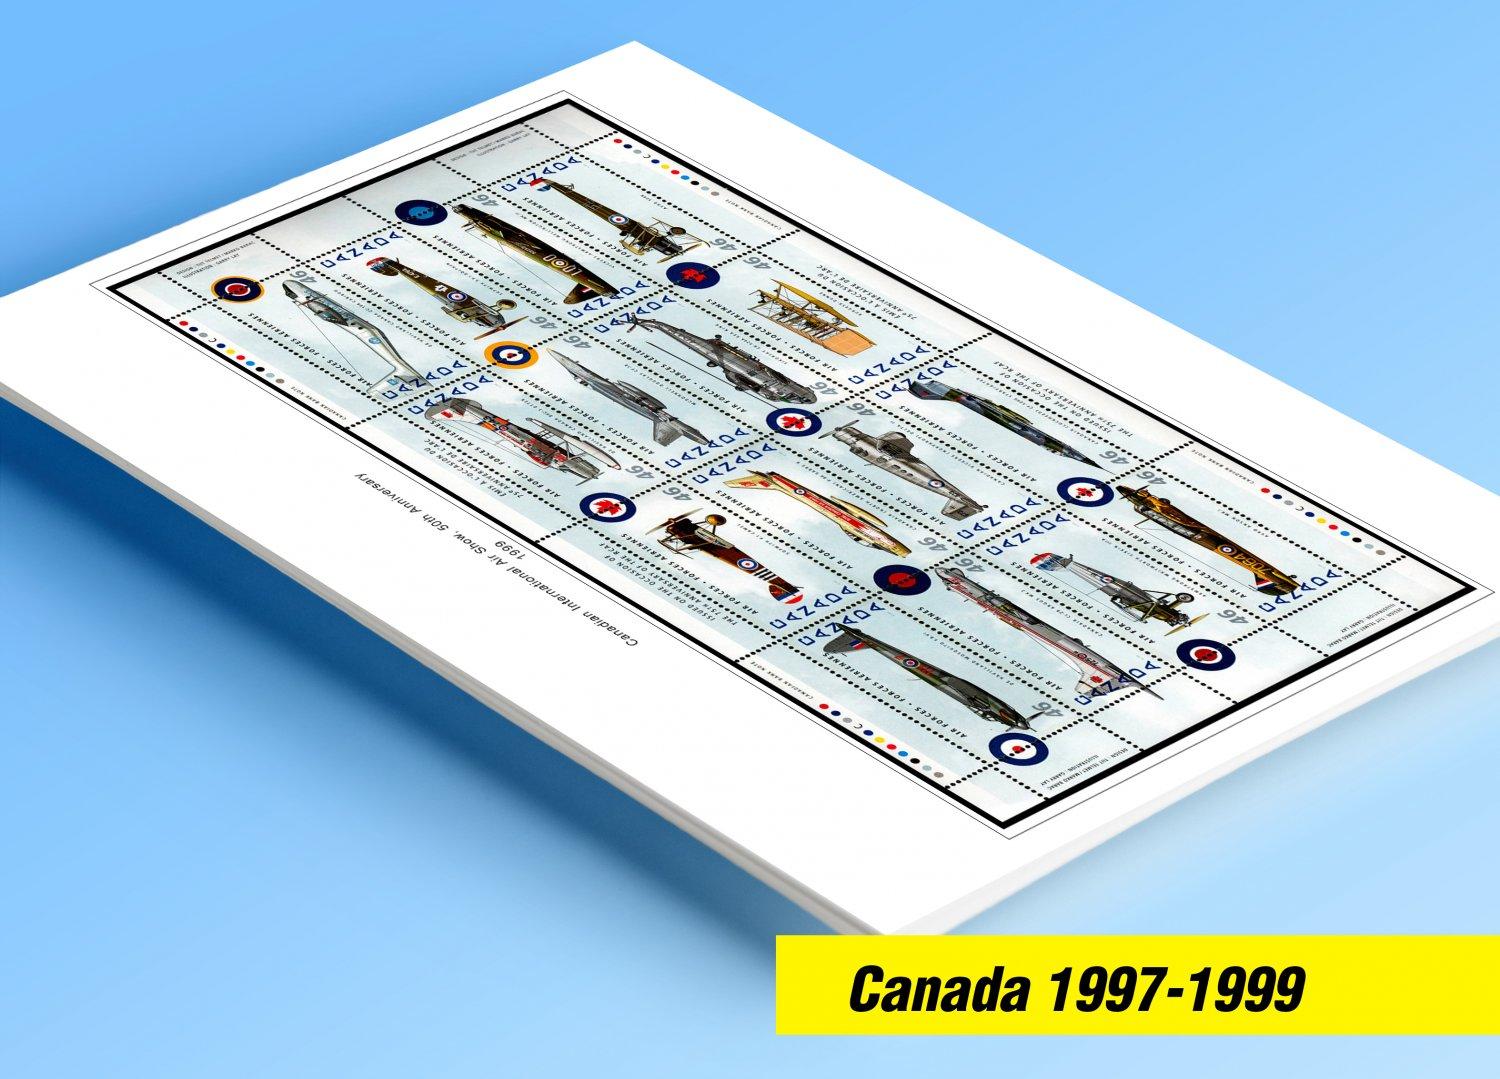 COLOR PRINTED CANADA 1997-1999 STAMP ALBUM PAGES (51 illustrated pages)